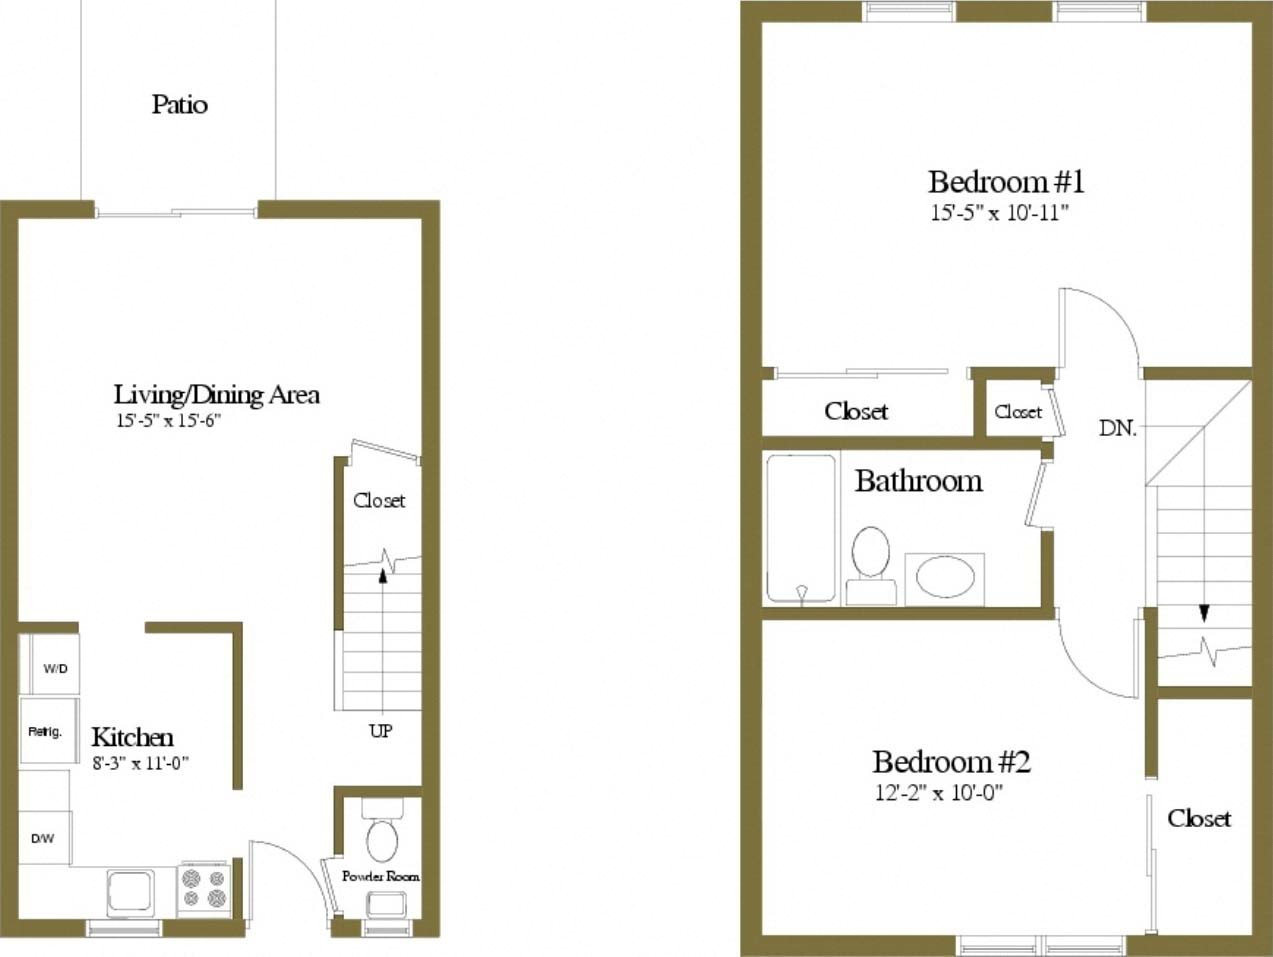 2 Bedrooms 1.5 Bath Floor Plan 2